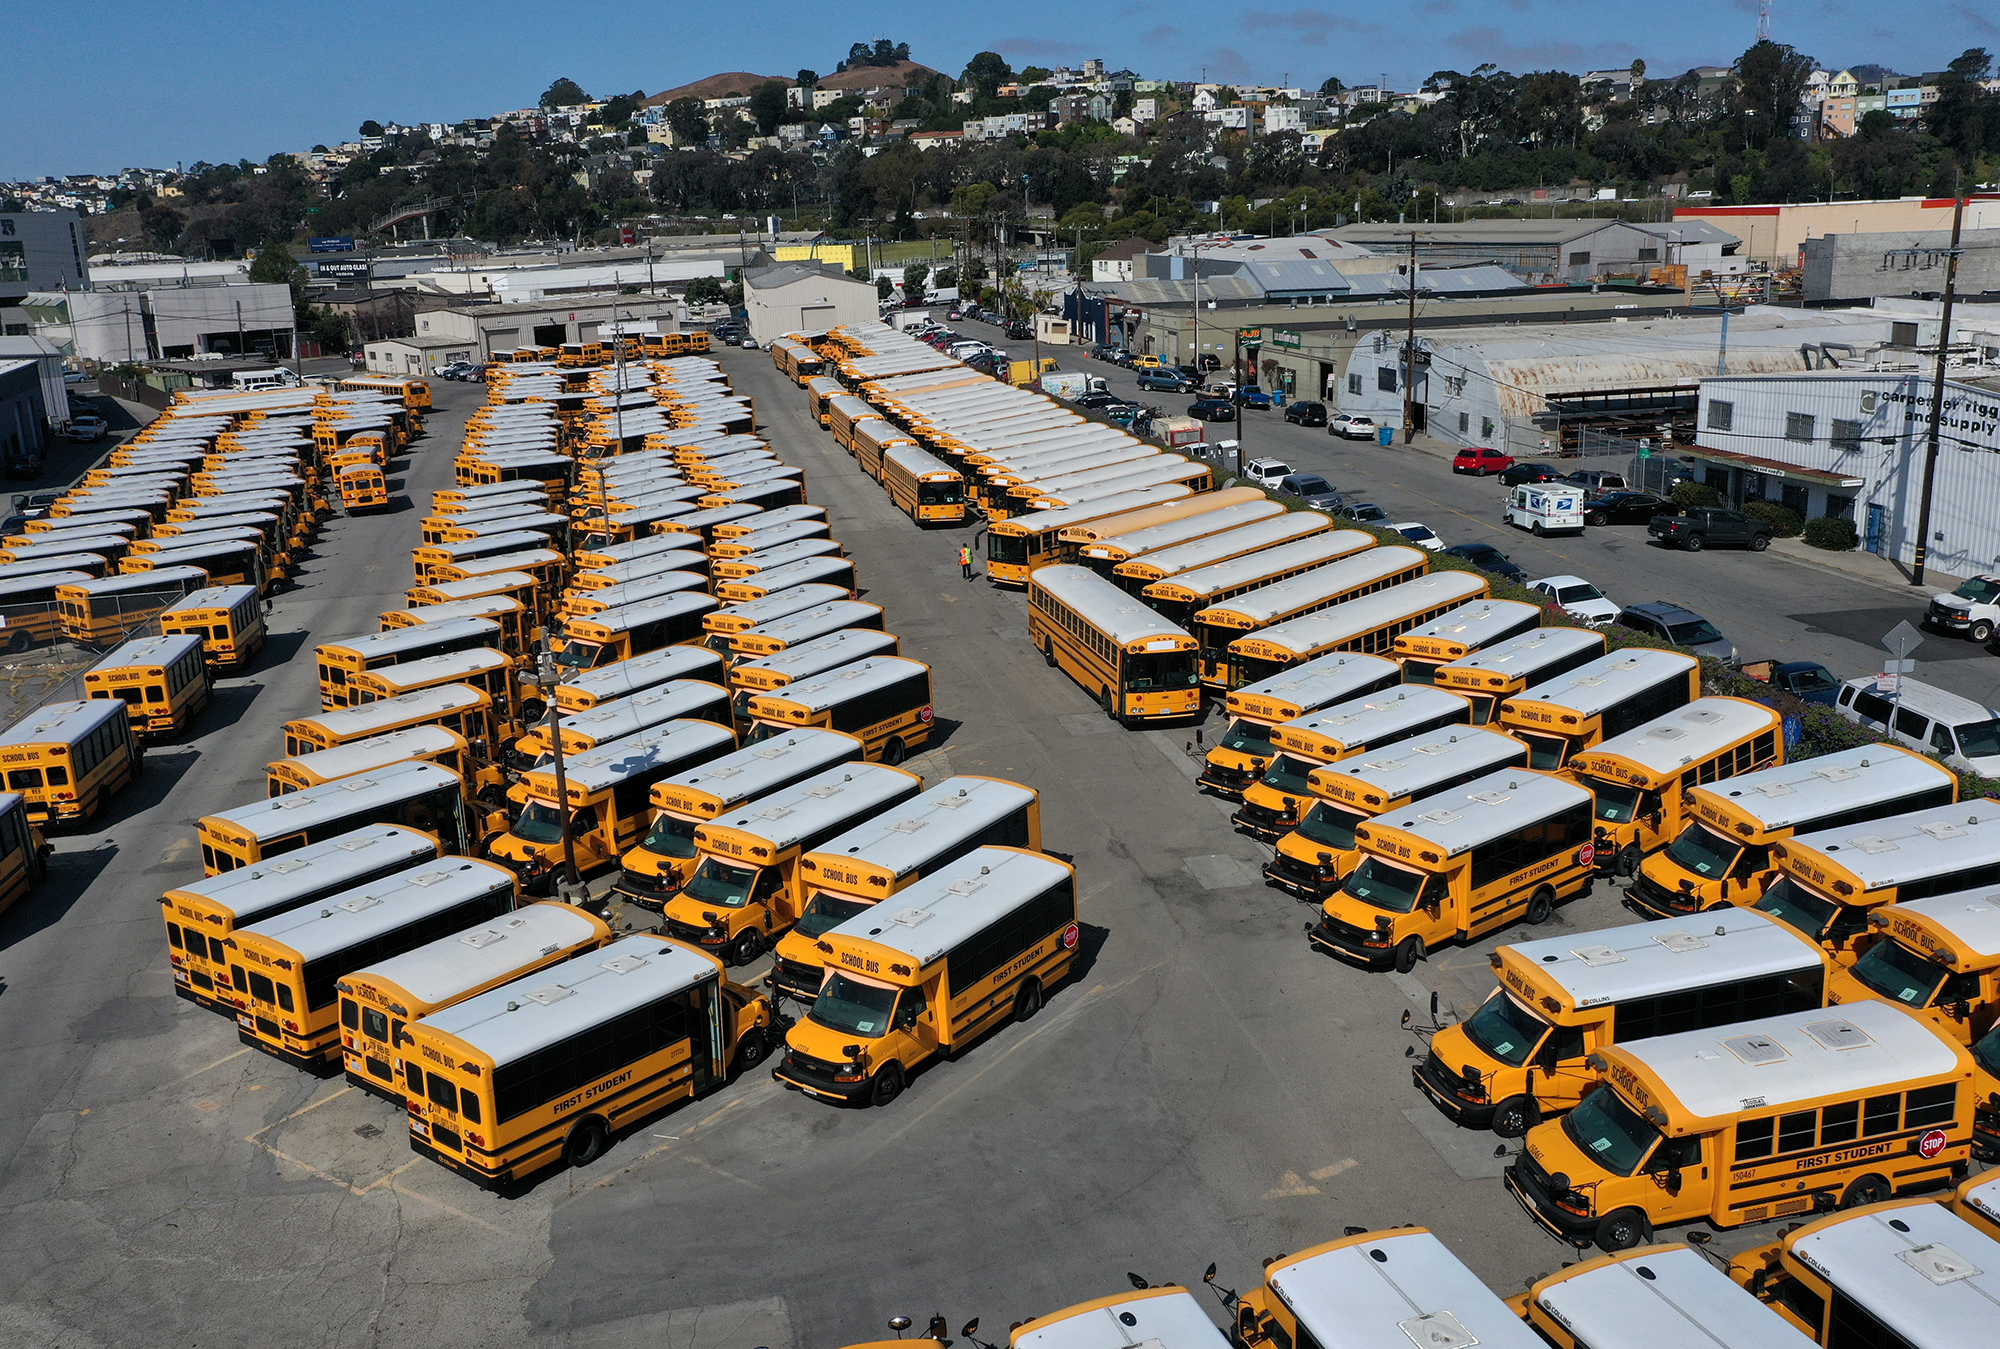 School buses sit parked in a lot at First Student Charter Bus Rental on July 14, 2020 in San Francisco, California.